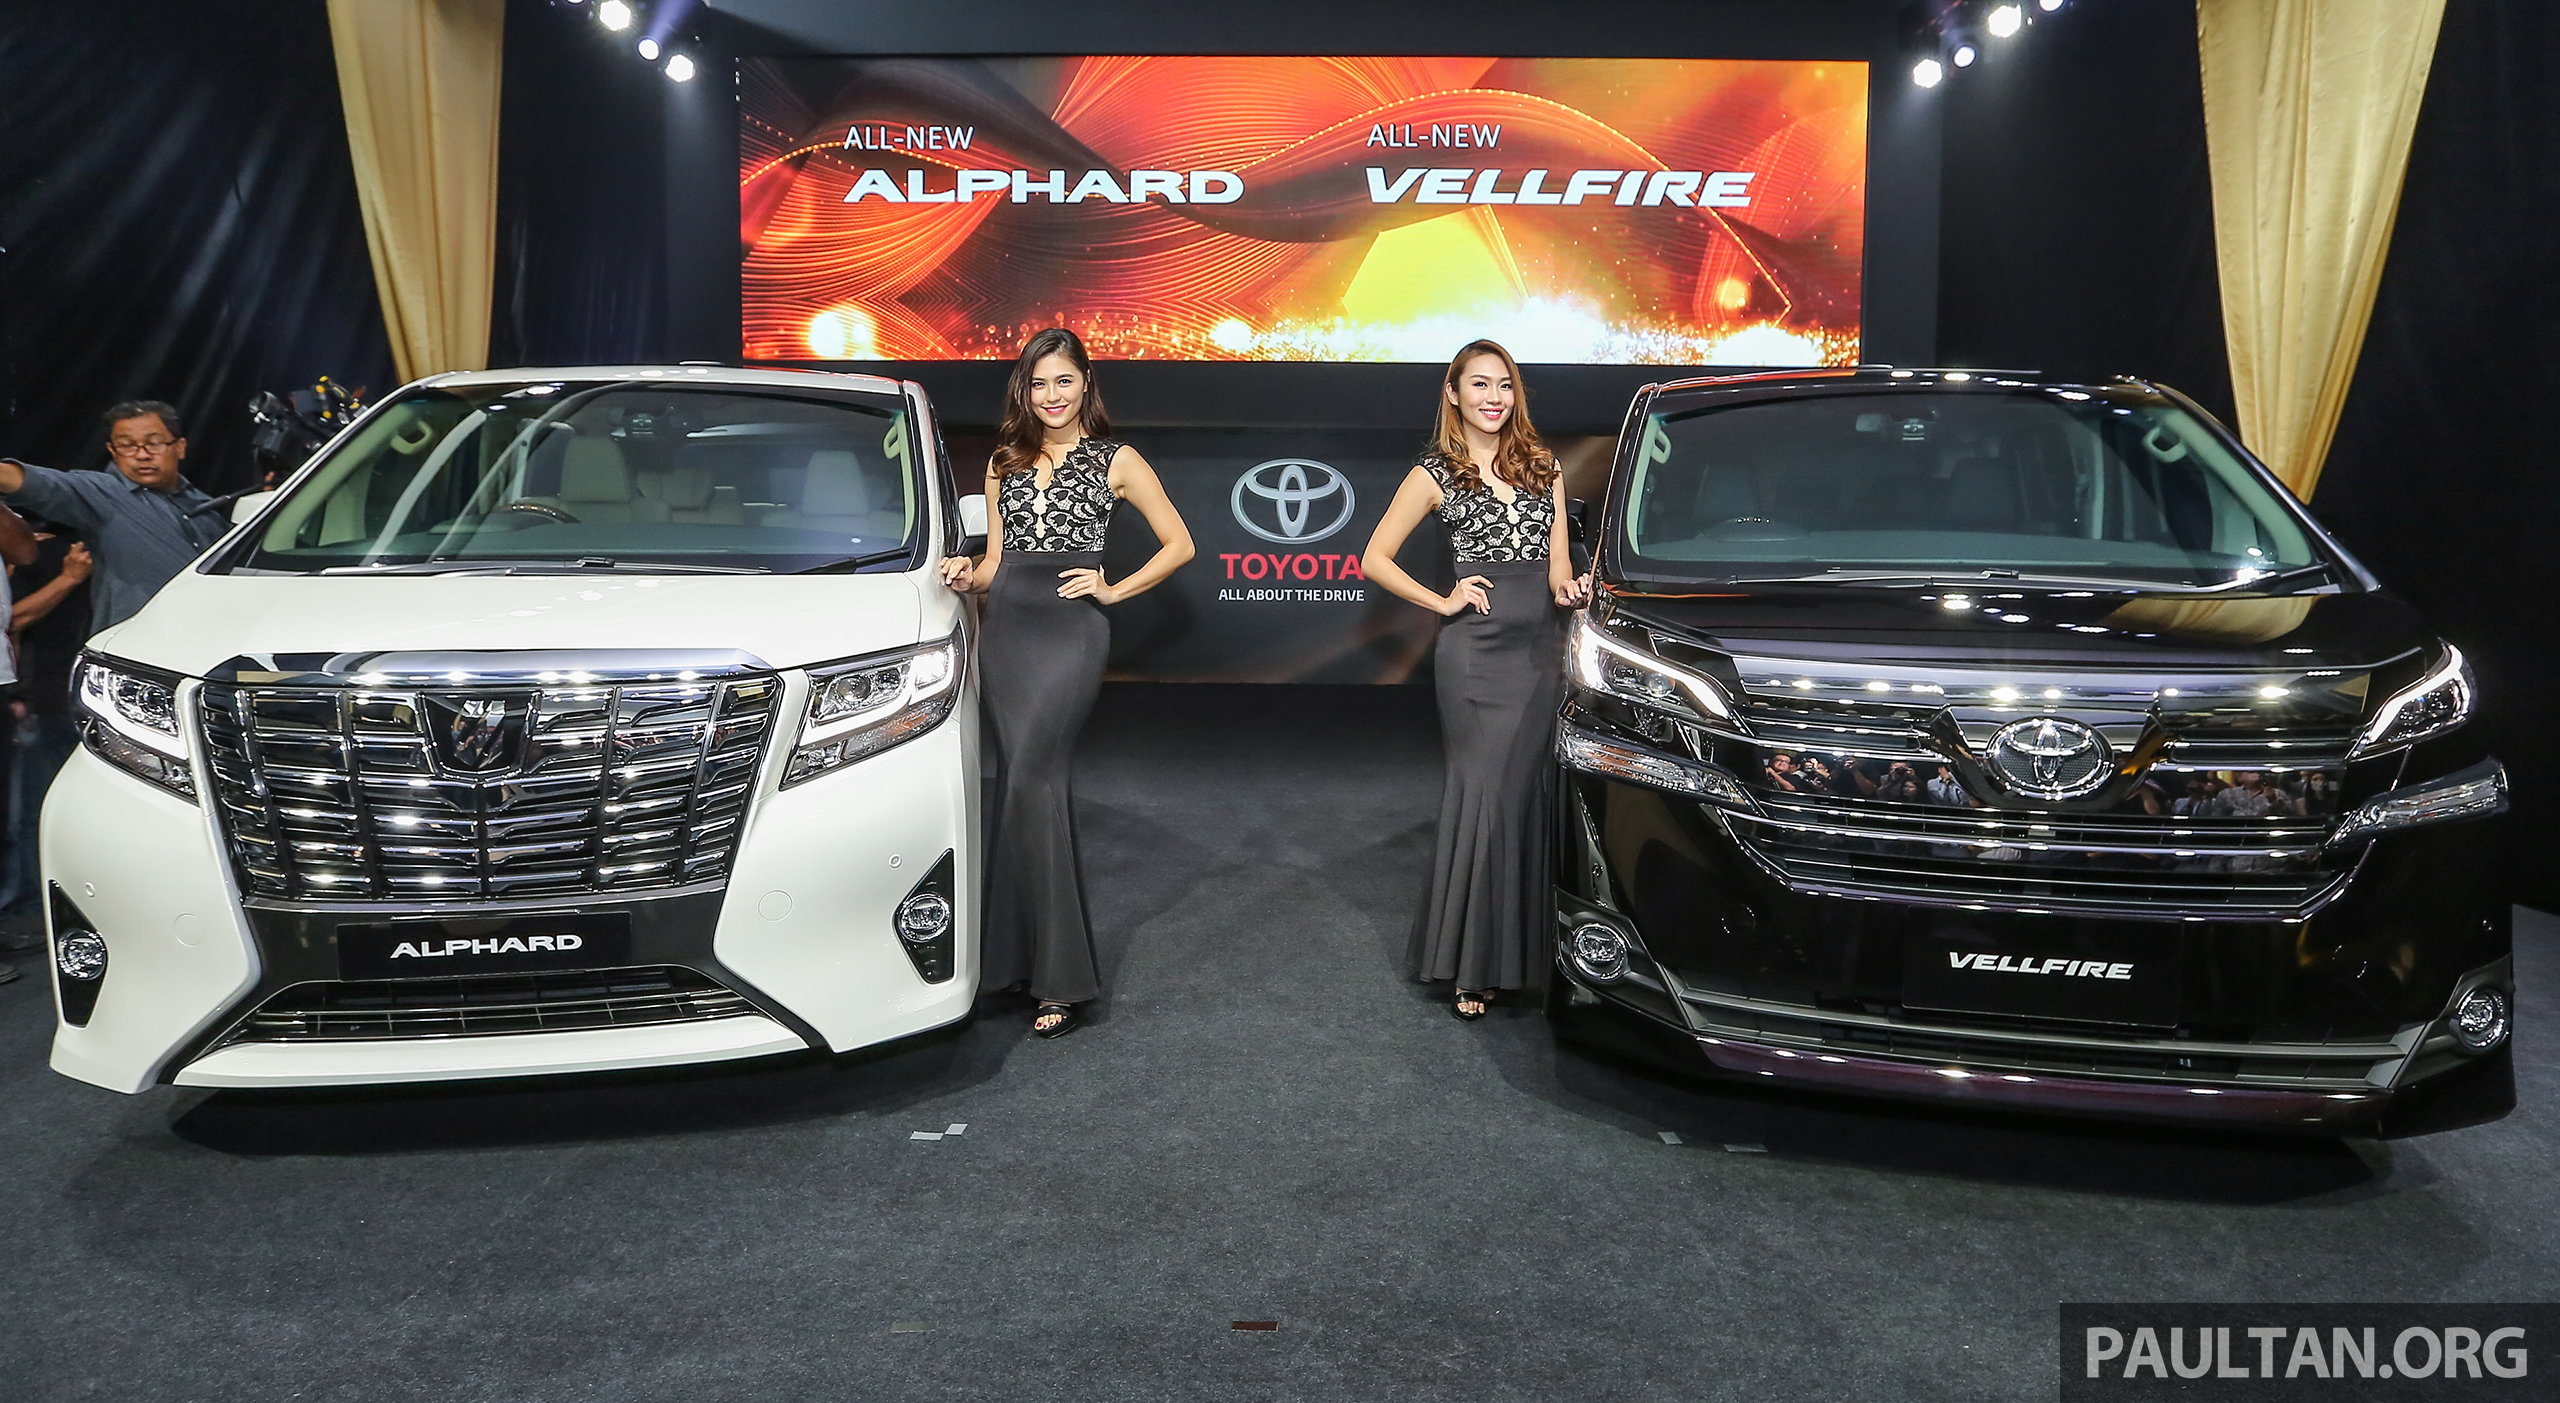 667 Toyota Vellfire Cars For Sale in Malaysia